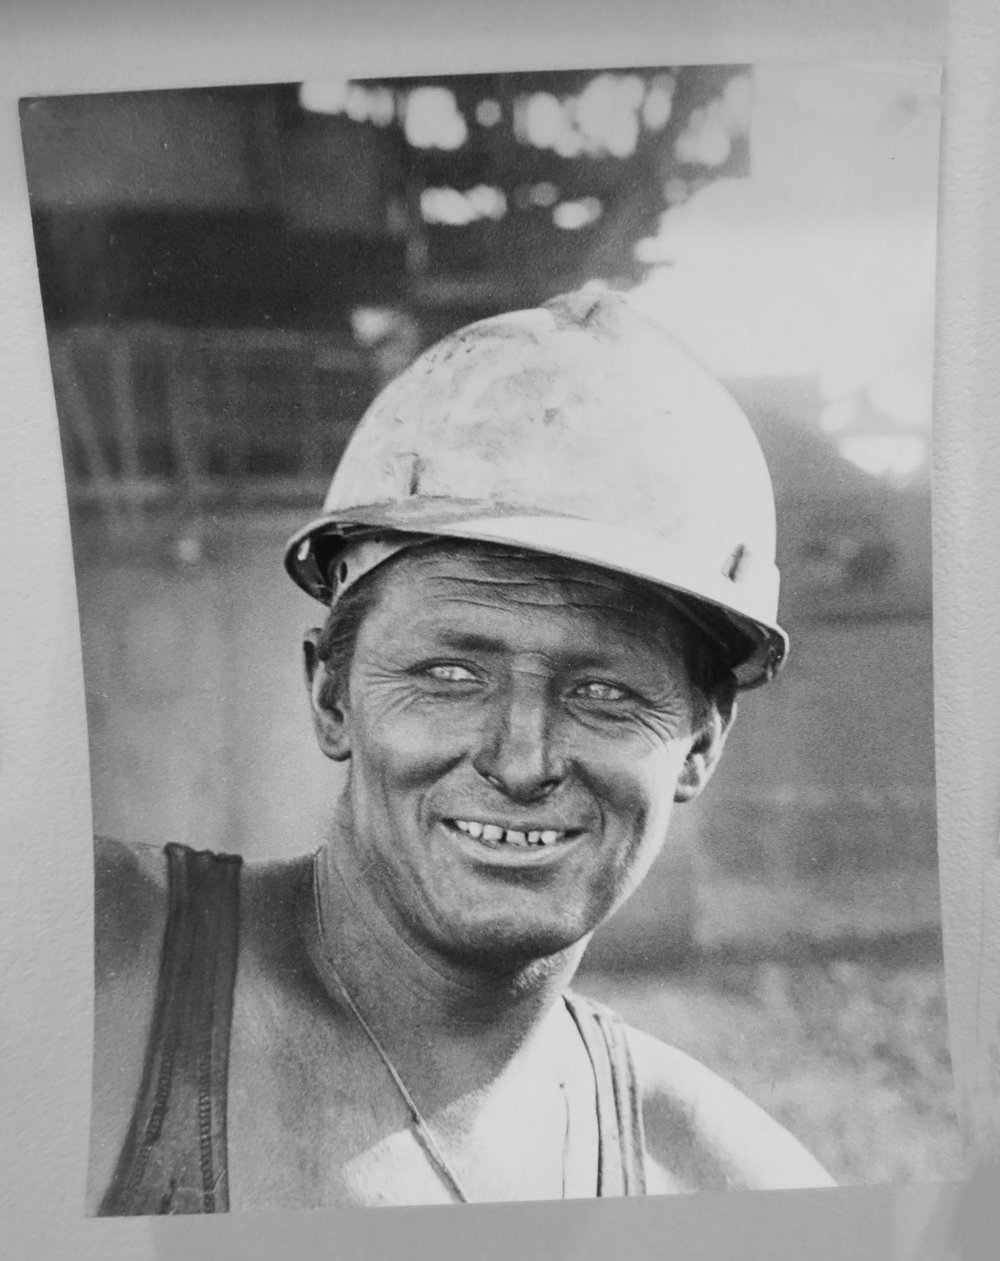 90. Richard Woldendorp, 'Iron Ore Worker, Mt Goldsworthy WA', BW300, taken and printed in 1968, Vintage Print